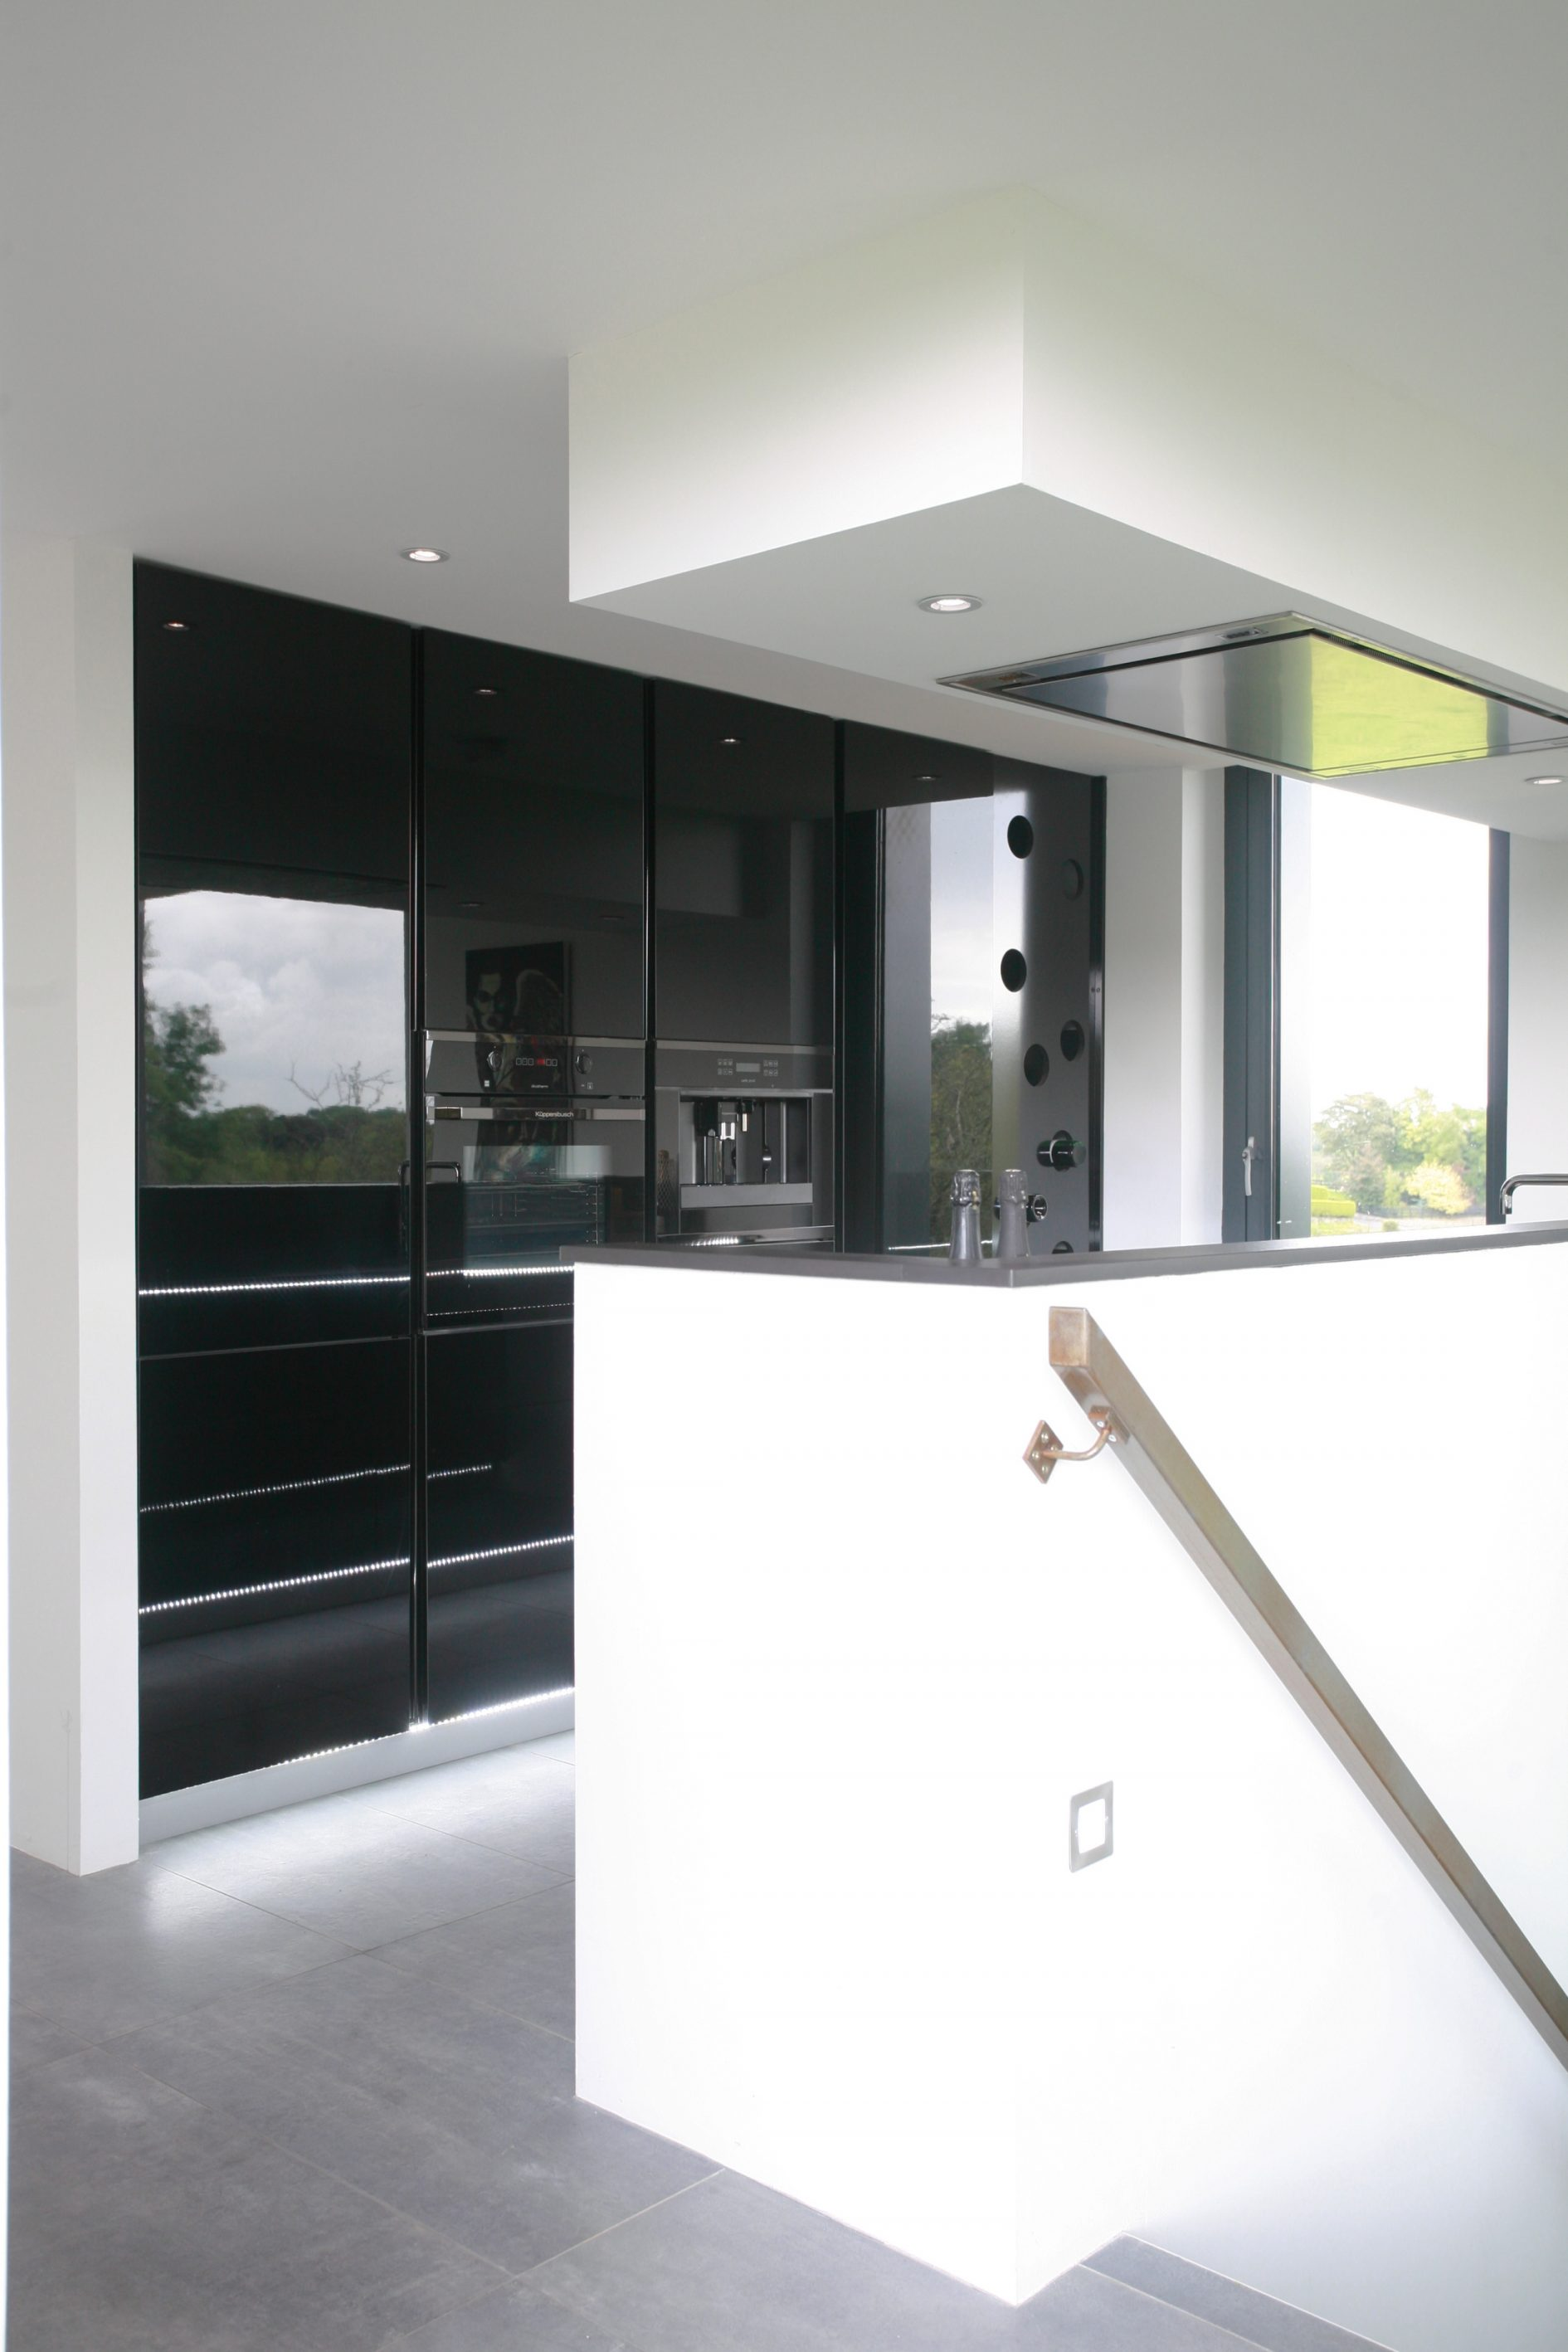 Stormer Designs Belfast A Kitchen For A Grand Designs Home